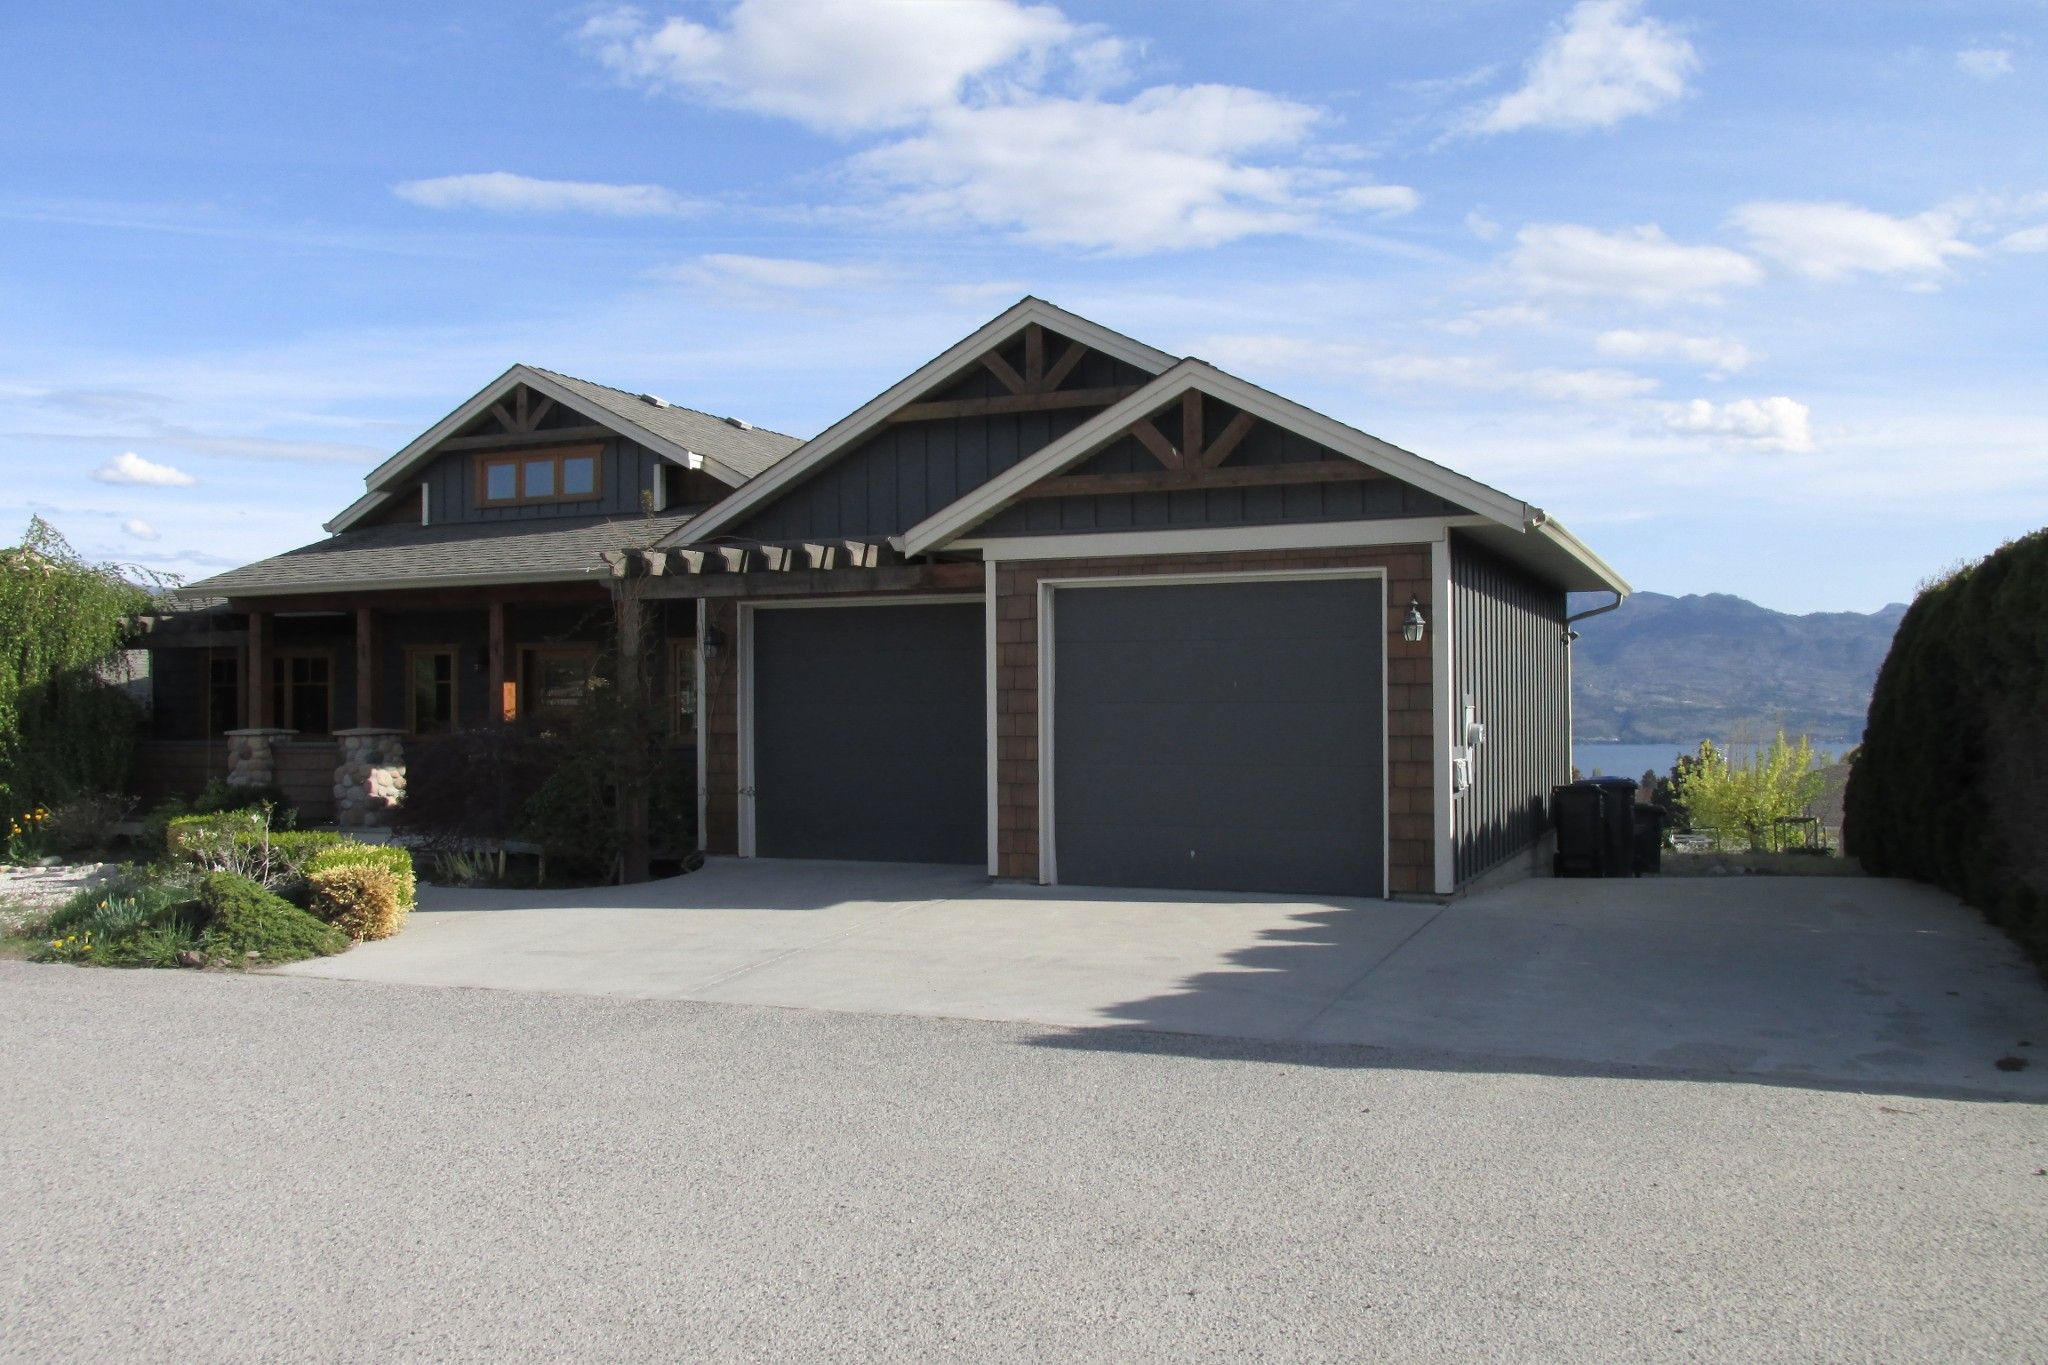 Photo 2: Photos: 1039 Hudson Rd. in West Kelowna: Lakeview Heights House for sale : MLS®# 10181783